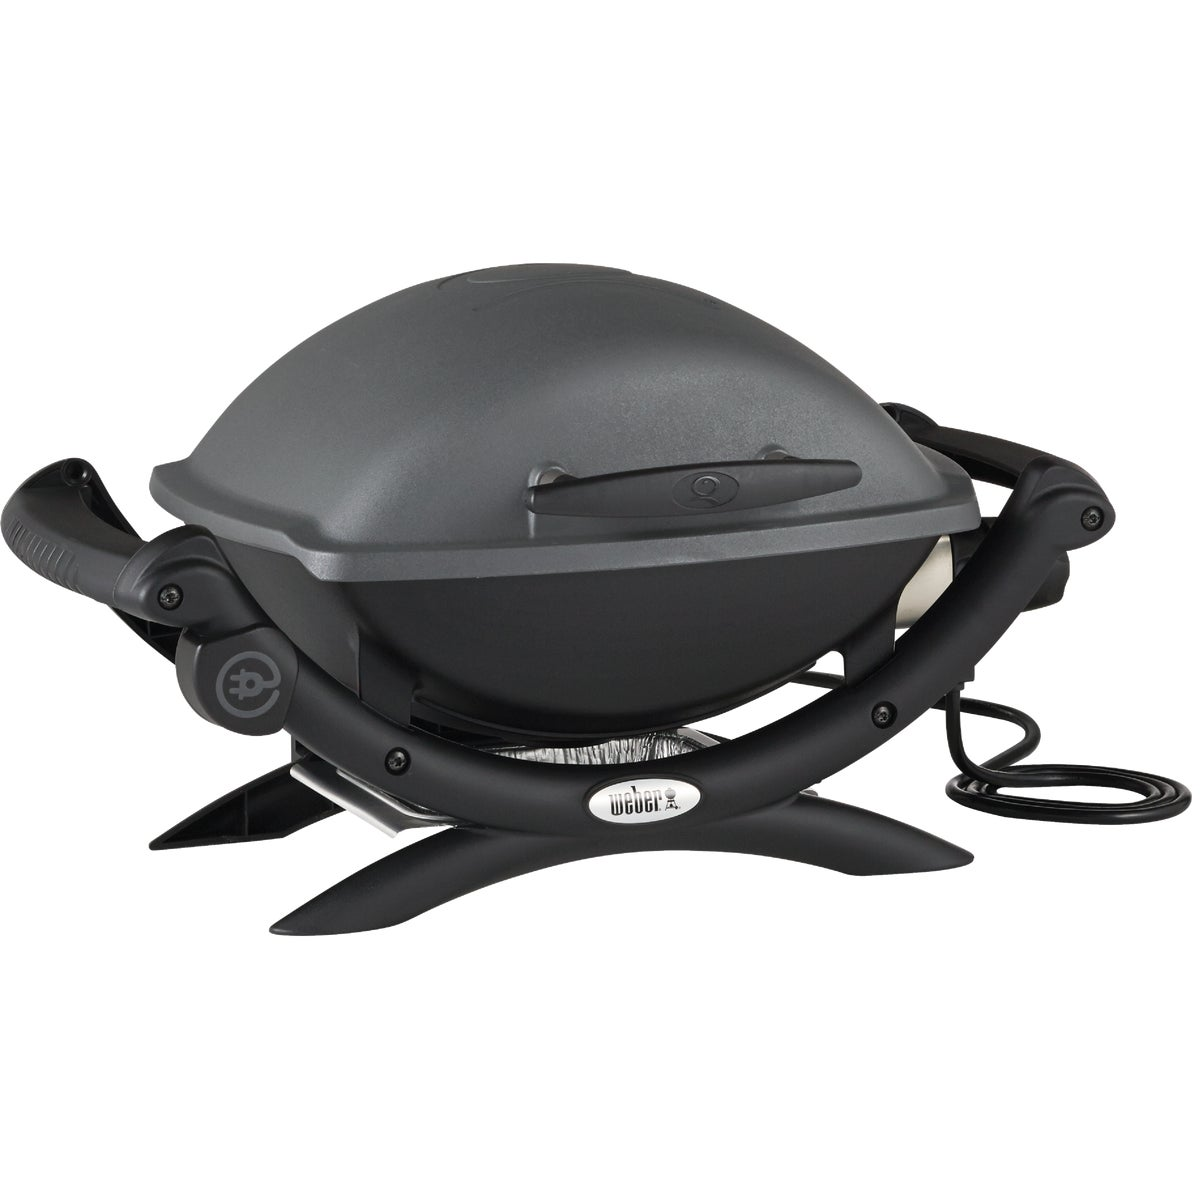 Q1400 ELECTRIC GRILL - 52020001 by Weber